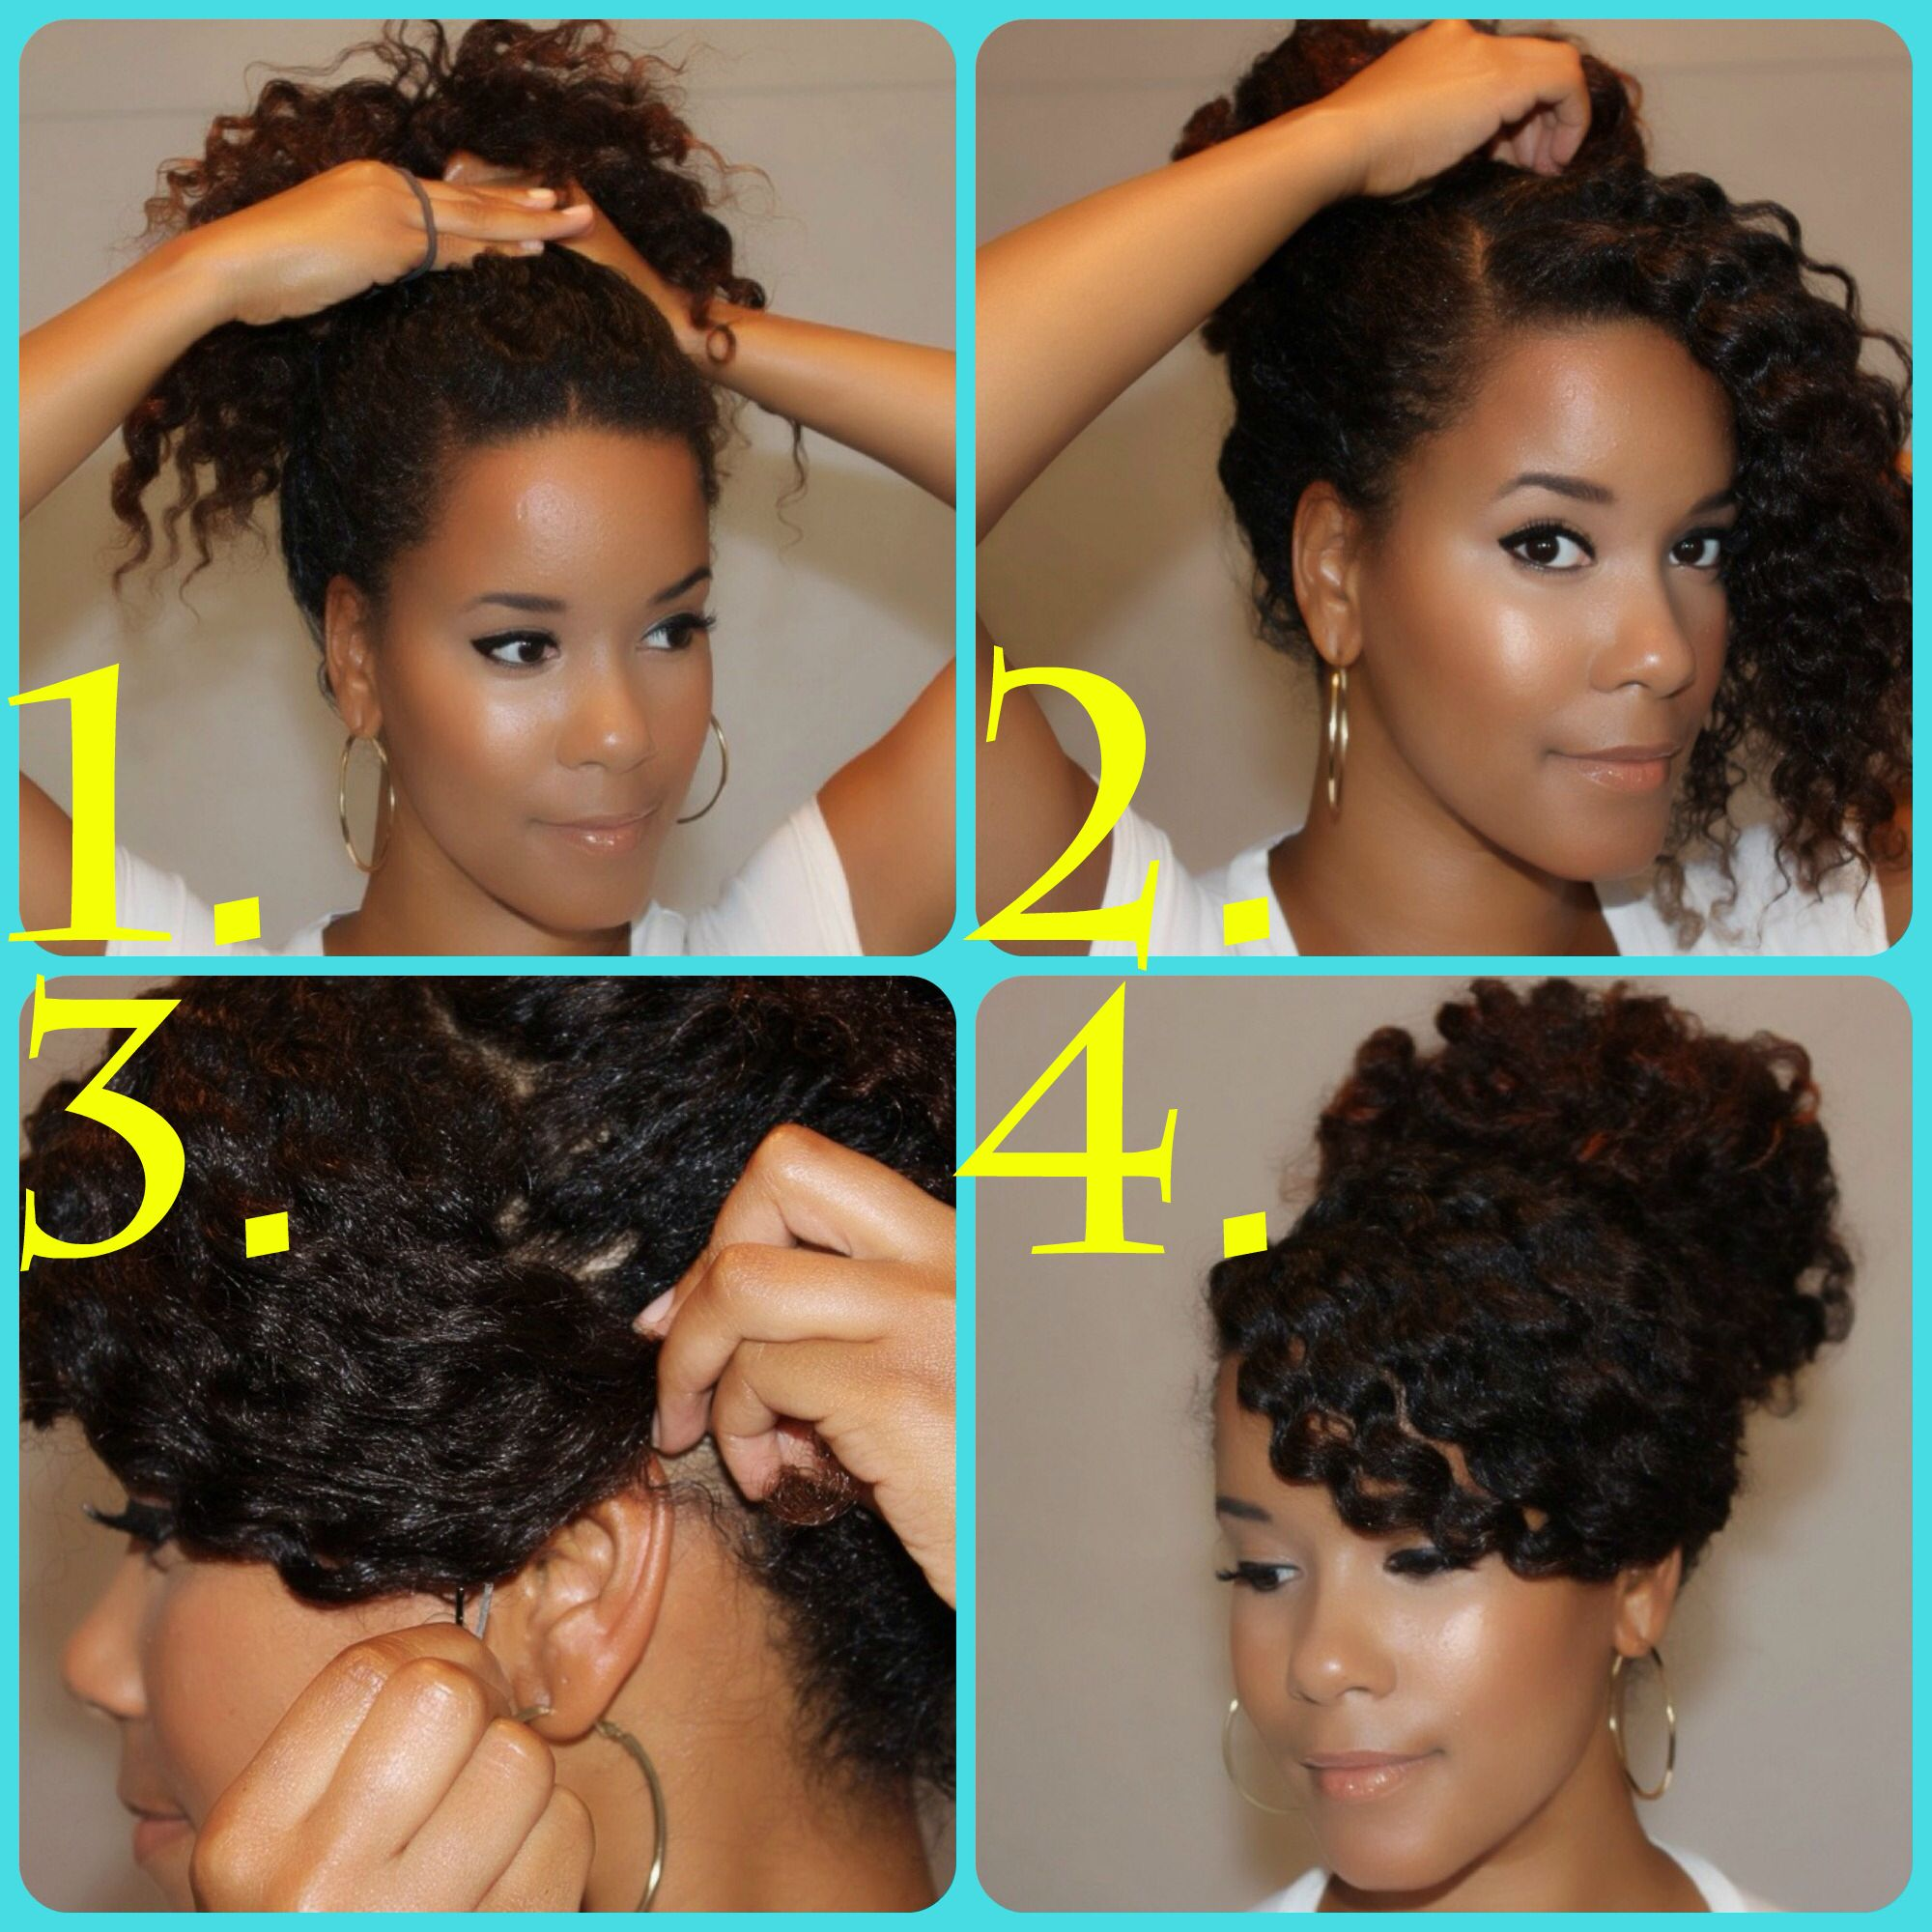 natural hair diy | swoop bang + high bun | how-to & diy